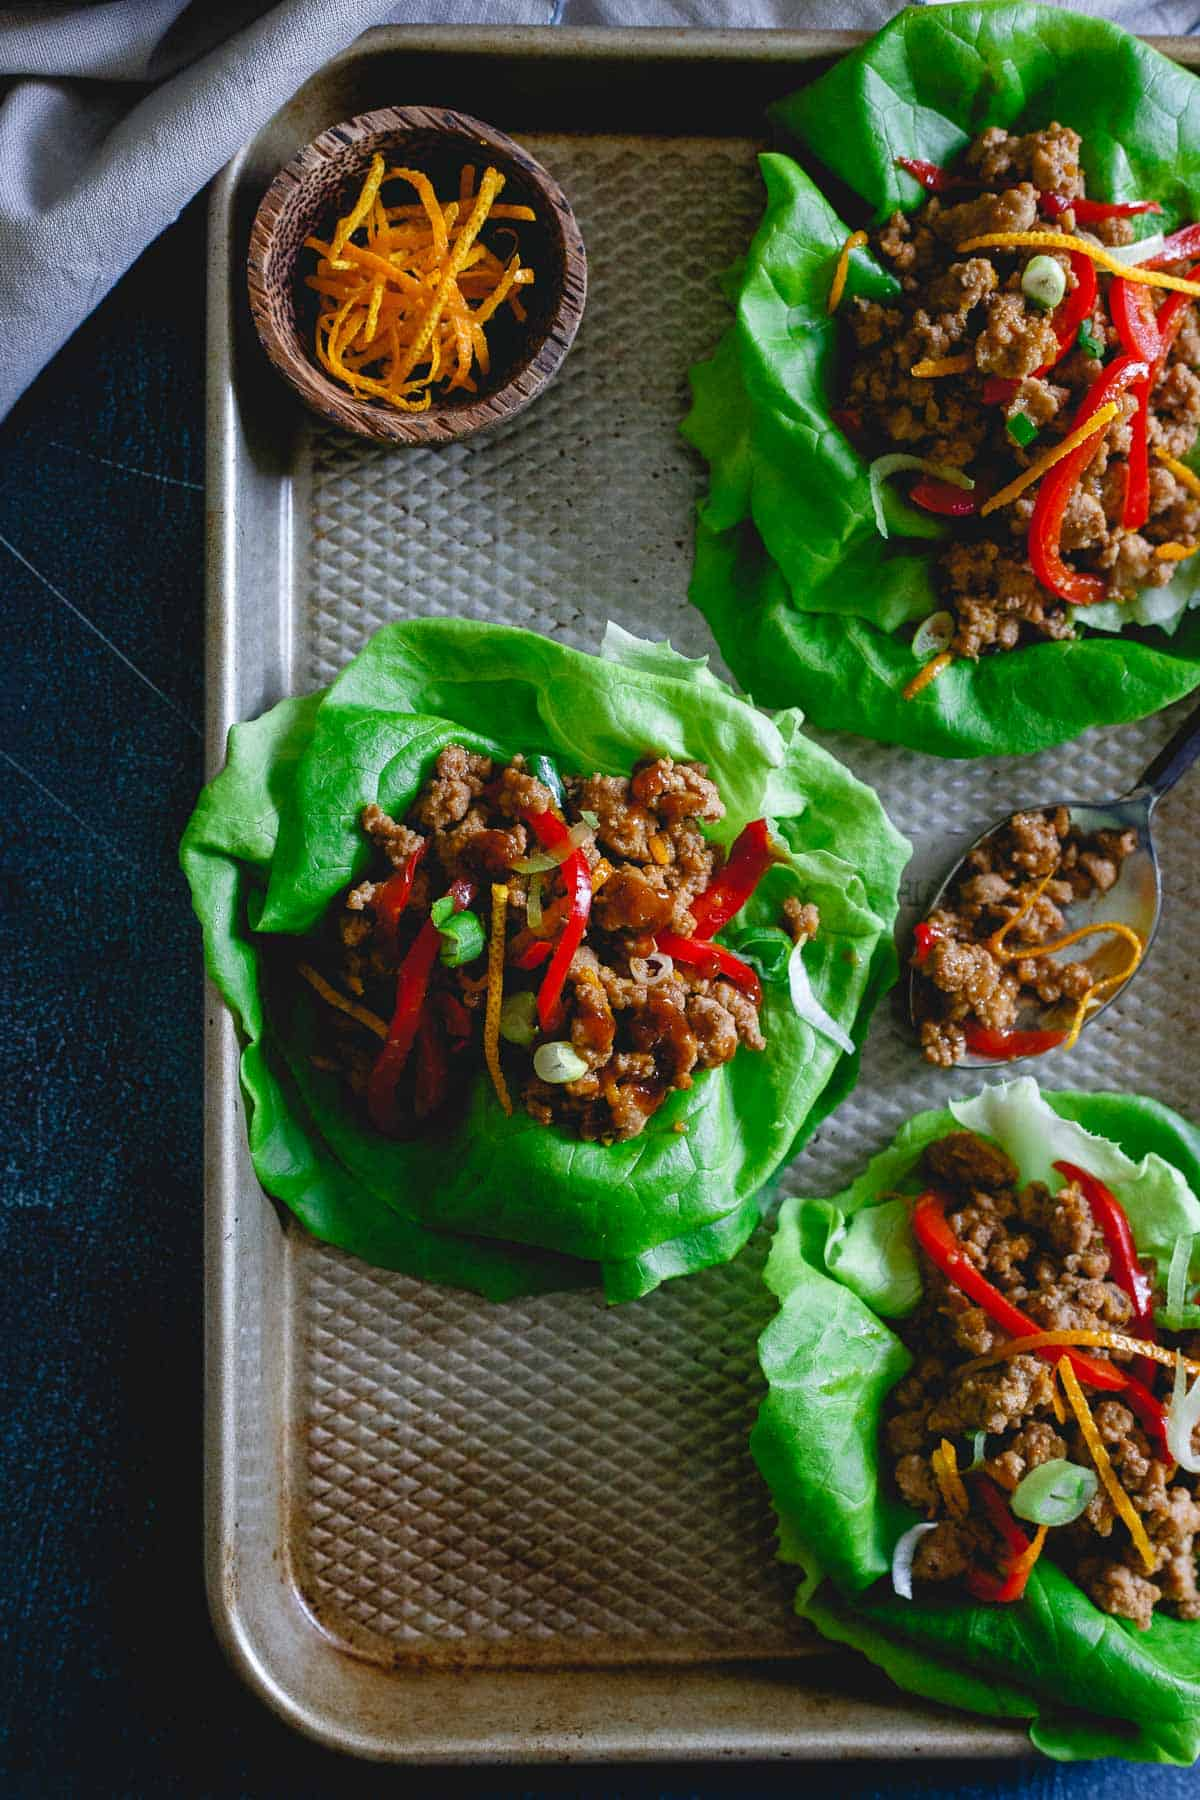 These Asian inspired turkey lettuce wraps are infused with a sticky, sweet, savory and slightly spicy orange sauce making them an irresistibly easy and tasty meal.